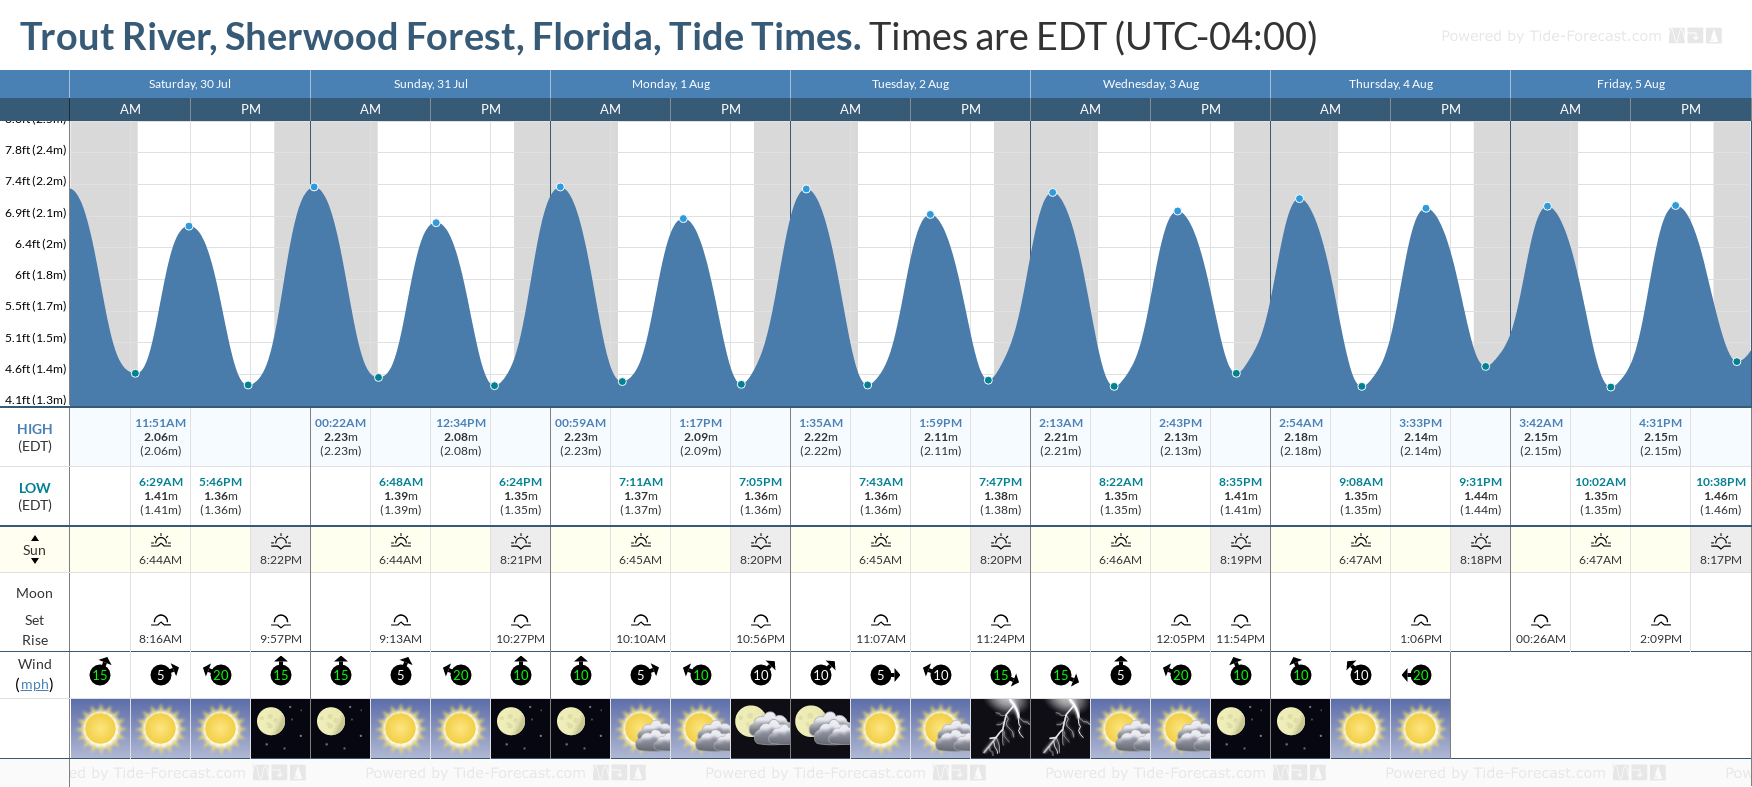 Trout River, Sherwood Forest, Florida Tide Chart including high and low tide tide times for the next 7 days